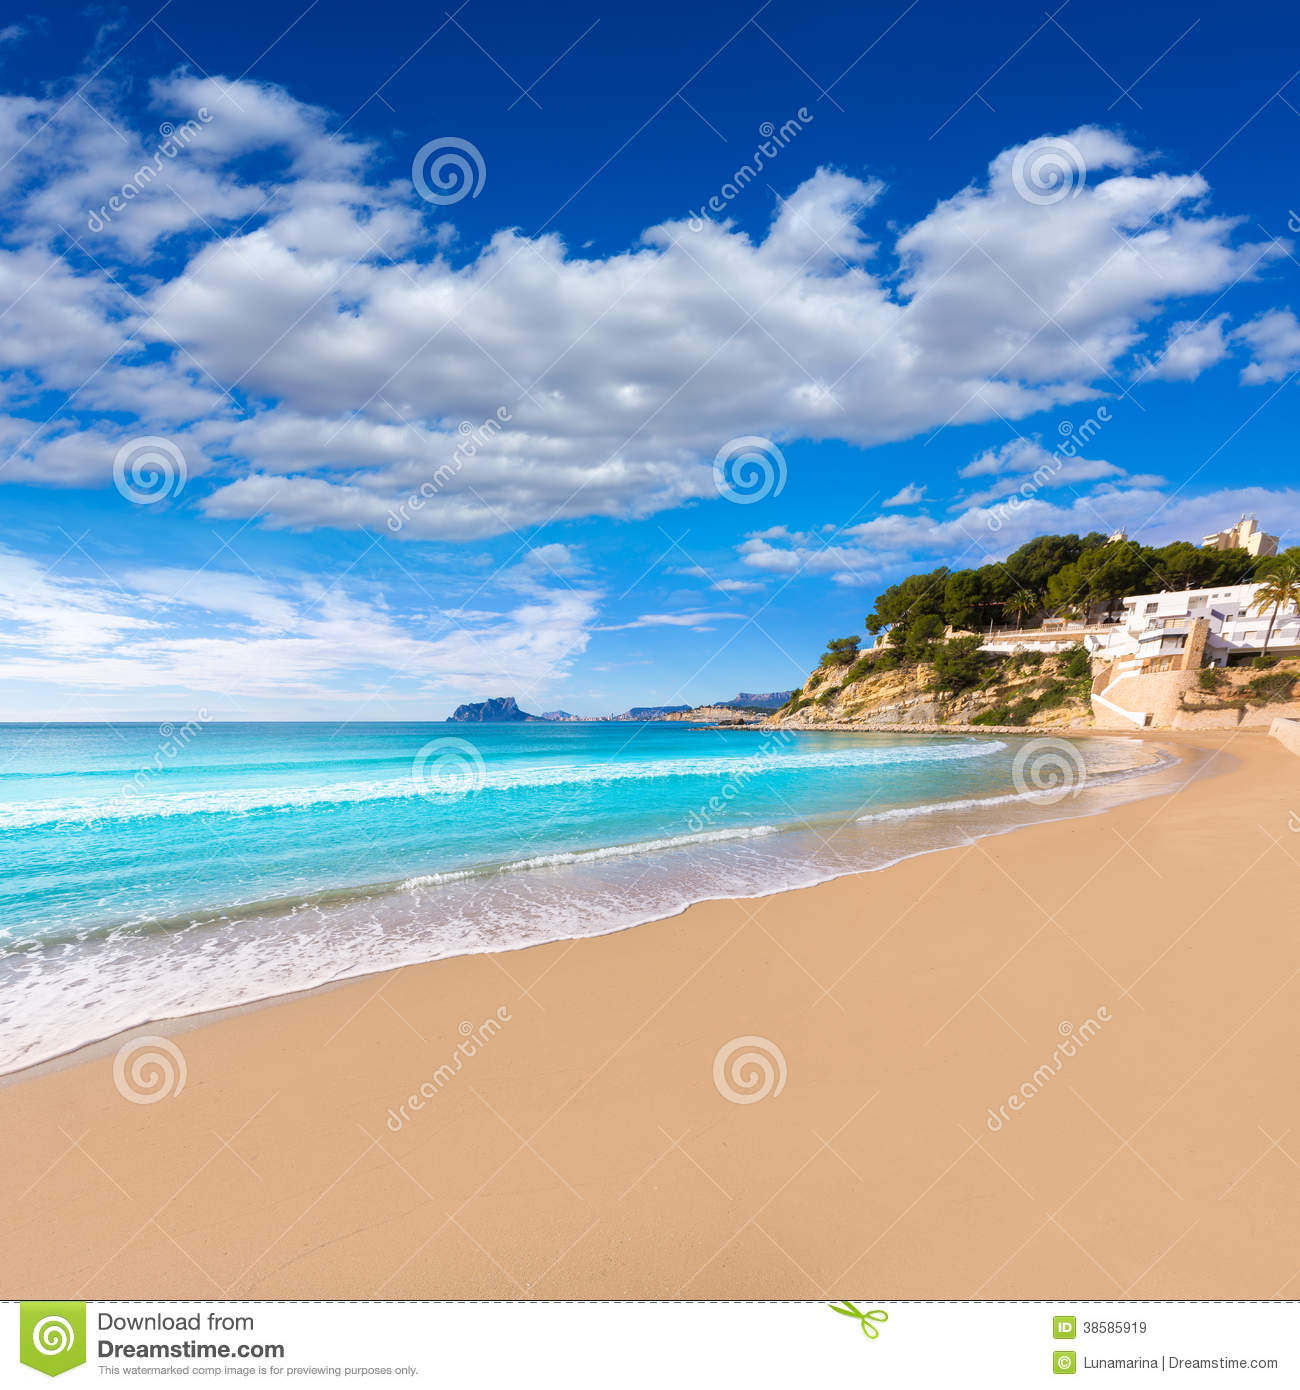 Long Stay Vacations In Spain: Moraira Beach Turquoise Water In Alicante Royalty Free